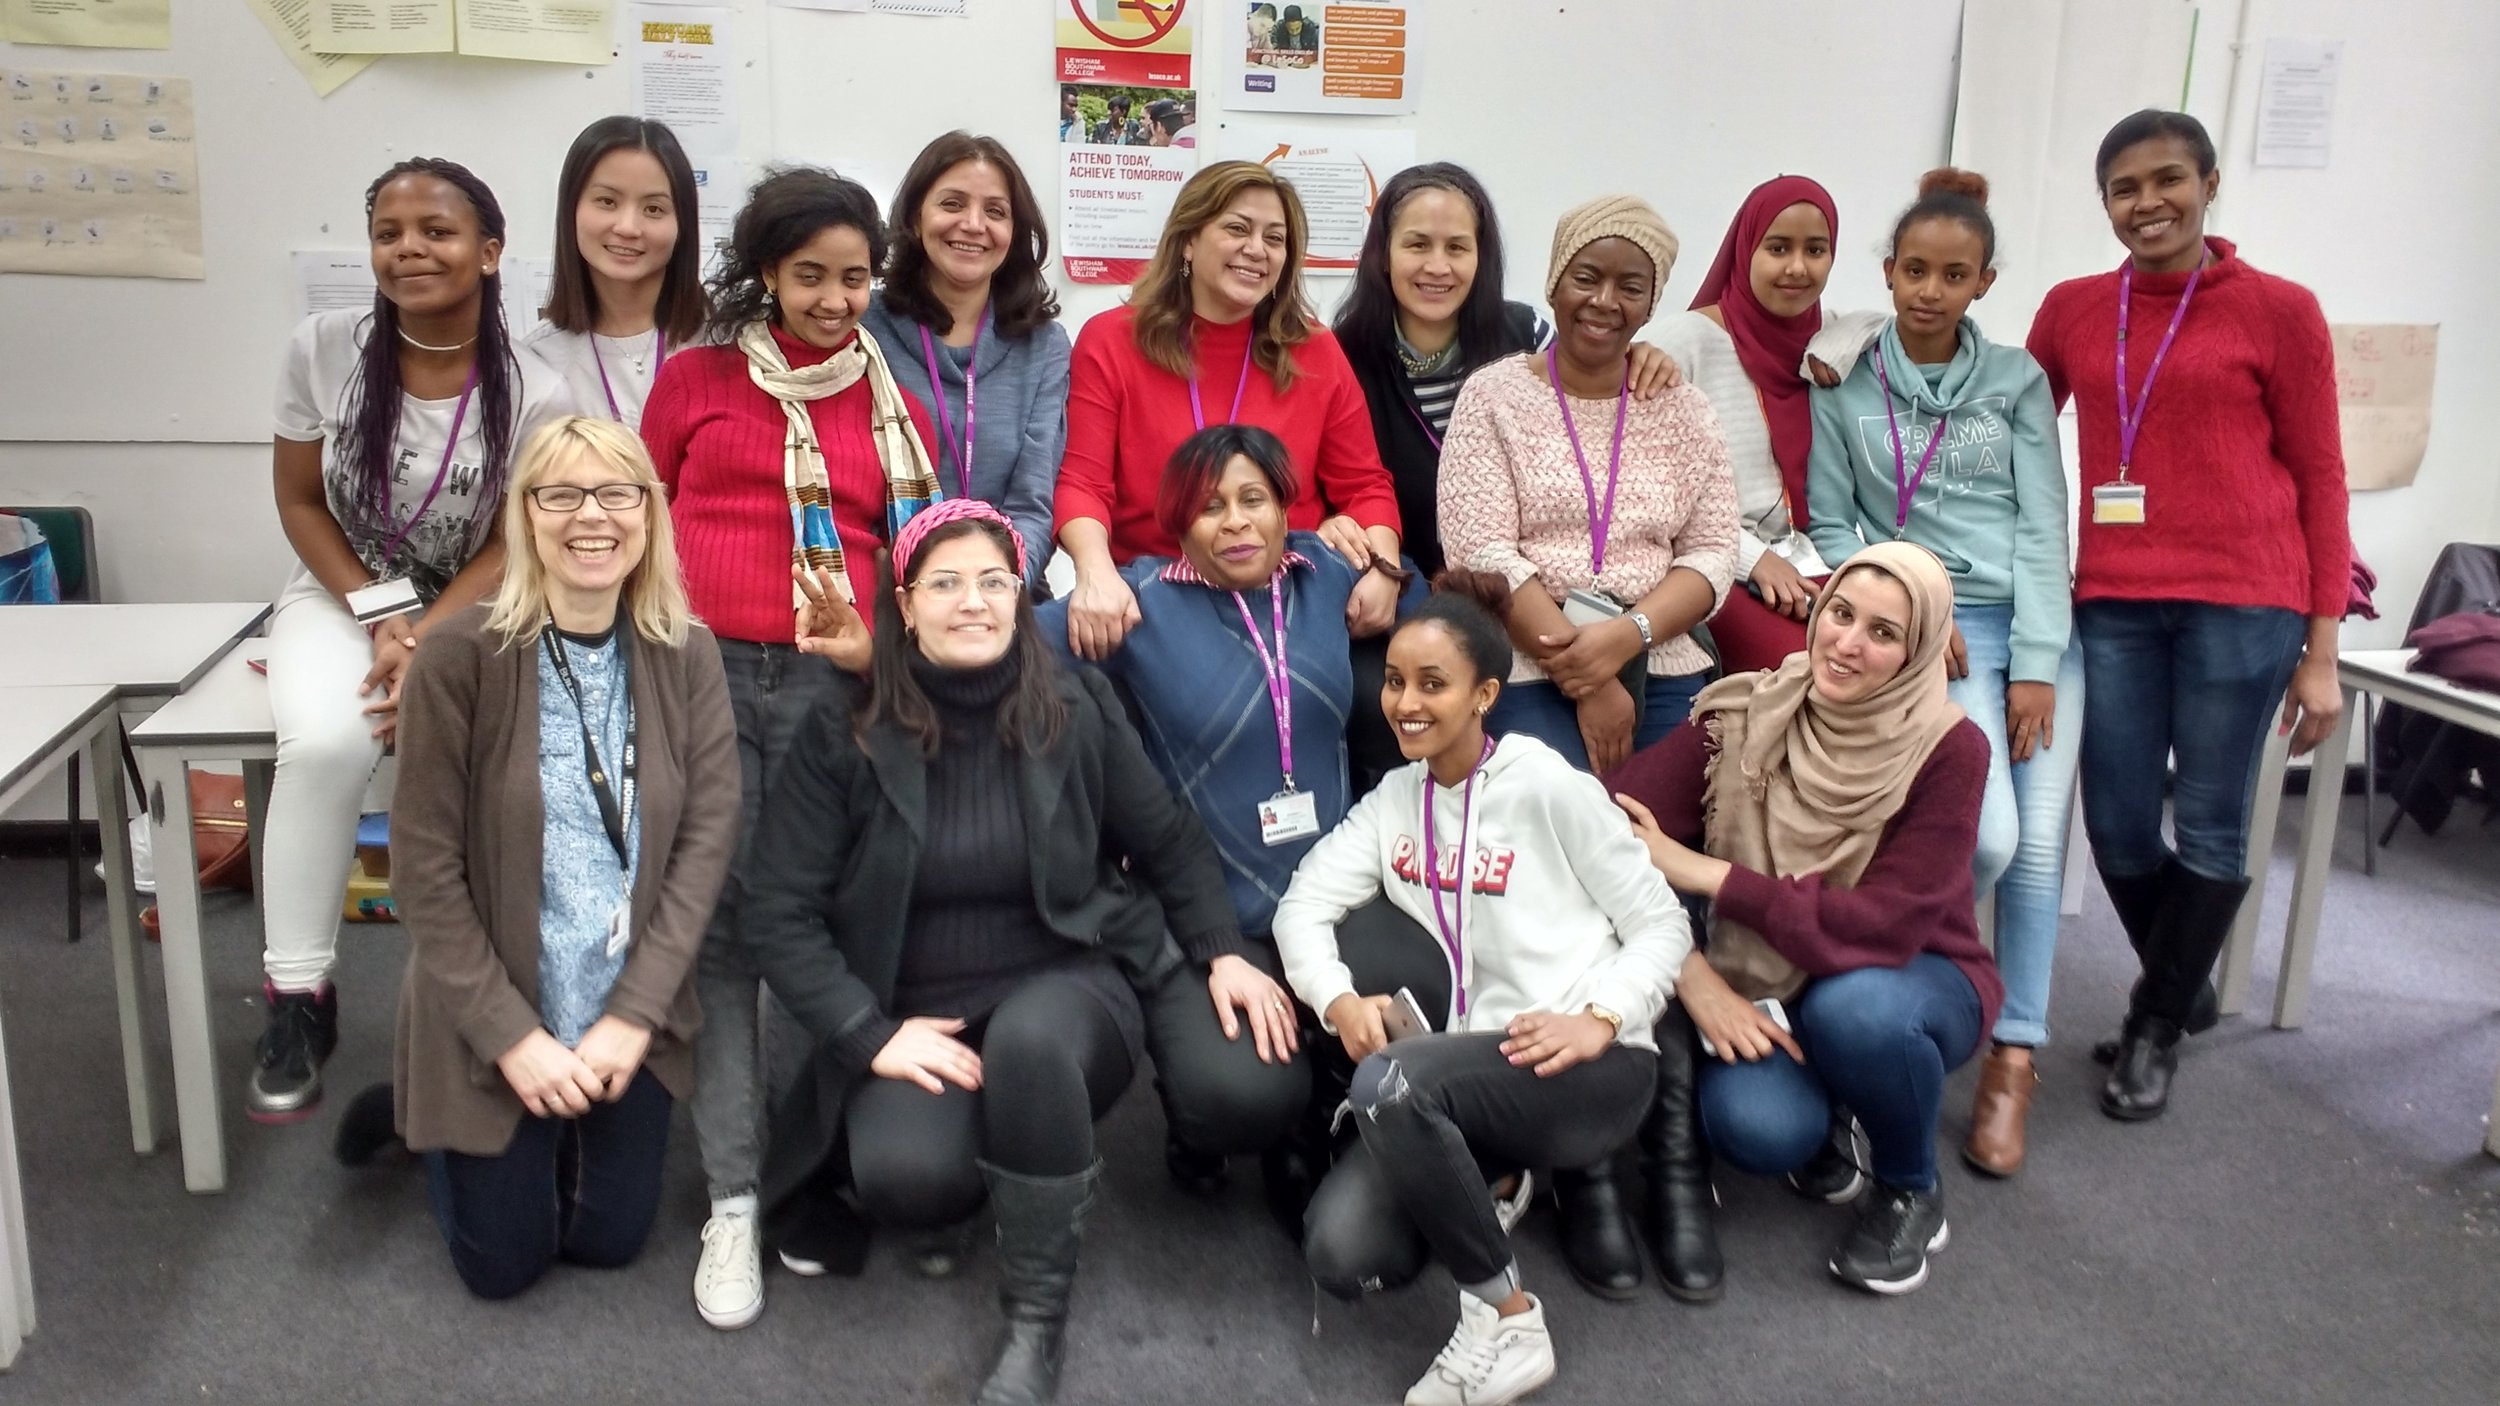 Student FUNDRAISERS from LEWISHAM College